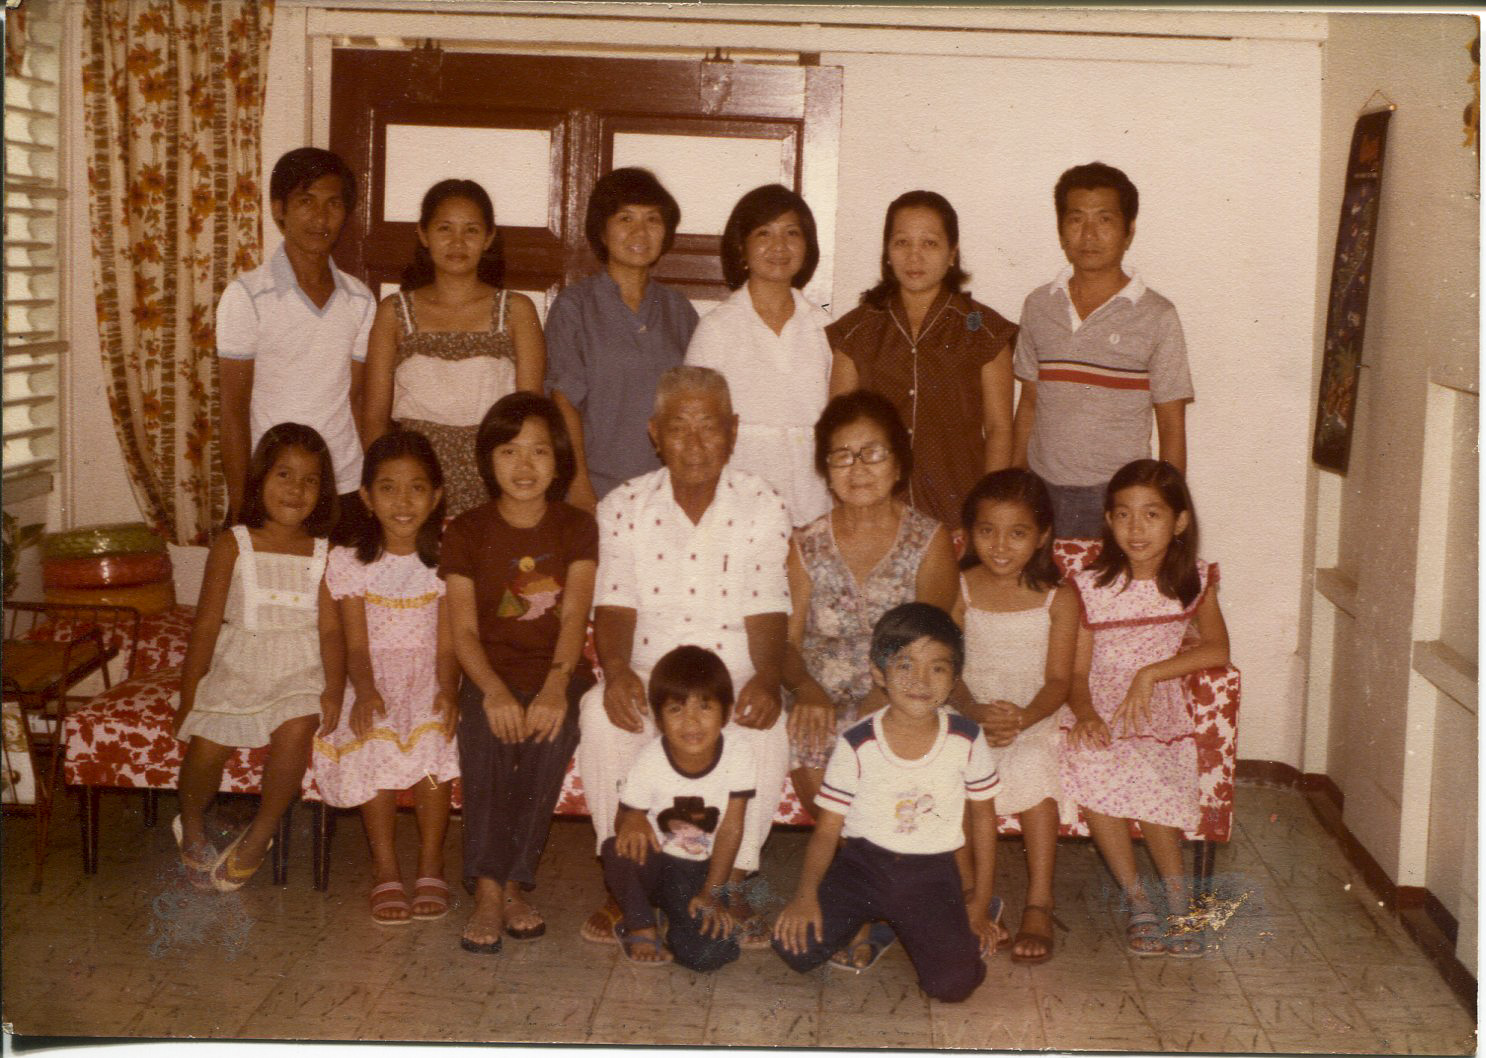 """Photo of Escarilla-Carnate and family, 1980 Taken in January 1980 in Iloilo City, in paternal grandparents' house by a professional photographer. Pictured are the grandparents, children, and grandchildren except 2 of her siblings who were born later. Escarilla-Carnate says the family speaks English and Tagalog, and the Ilongot dialect called Hiligaynon which has a """"melodious"""" tone compared to Karay-a which is """"harsh/harder"""" in tone.  Escarilla-Carnate said, """"This photo is significant because family is important and I am very close with siblings and cousins. Every Sunday, we have lunch or dinner with grandparents. These are good memories. Every Sunday after mass, my dad or or grandpa would stop by market to buy fresh meat, thin pork chops (no vegetables). Only one piece of liver was delivered on Sundays. There was no supermarket. We used vinegar and chili dip. The menu was always the same every Sunday.""""   Any views, findings, conclusions, or recommendations expressed in this story do not necessarily represent those of the National Endowment for the Humanities. [Copyright] Field Museum of Natural History - CC BY-NC"""